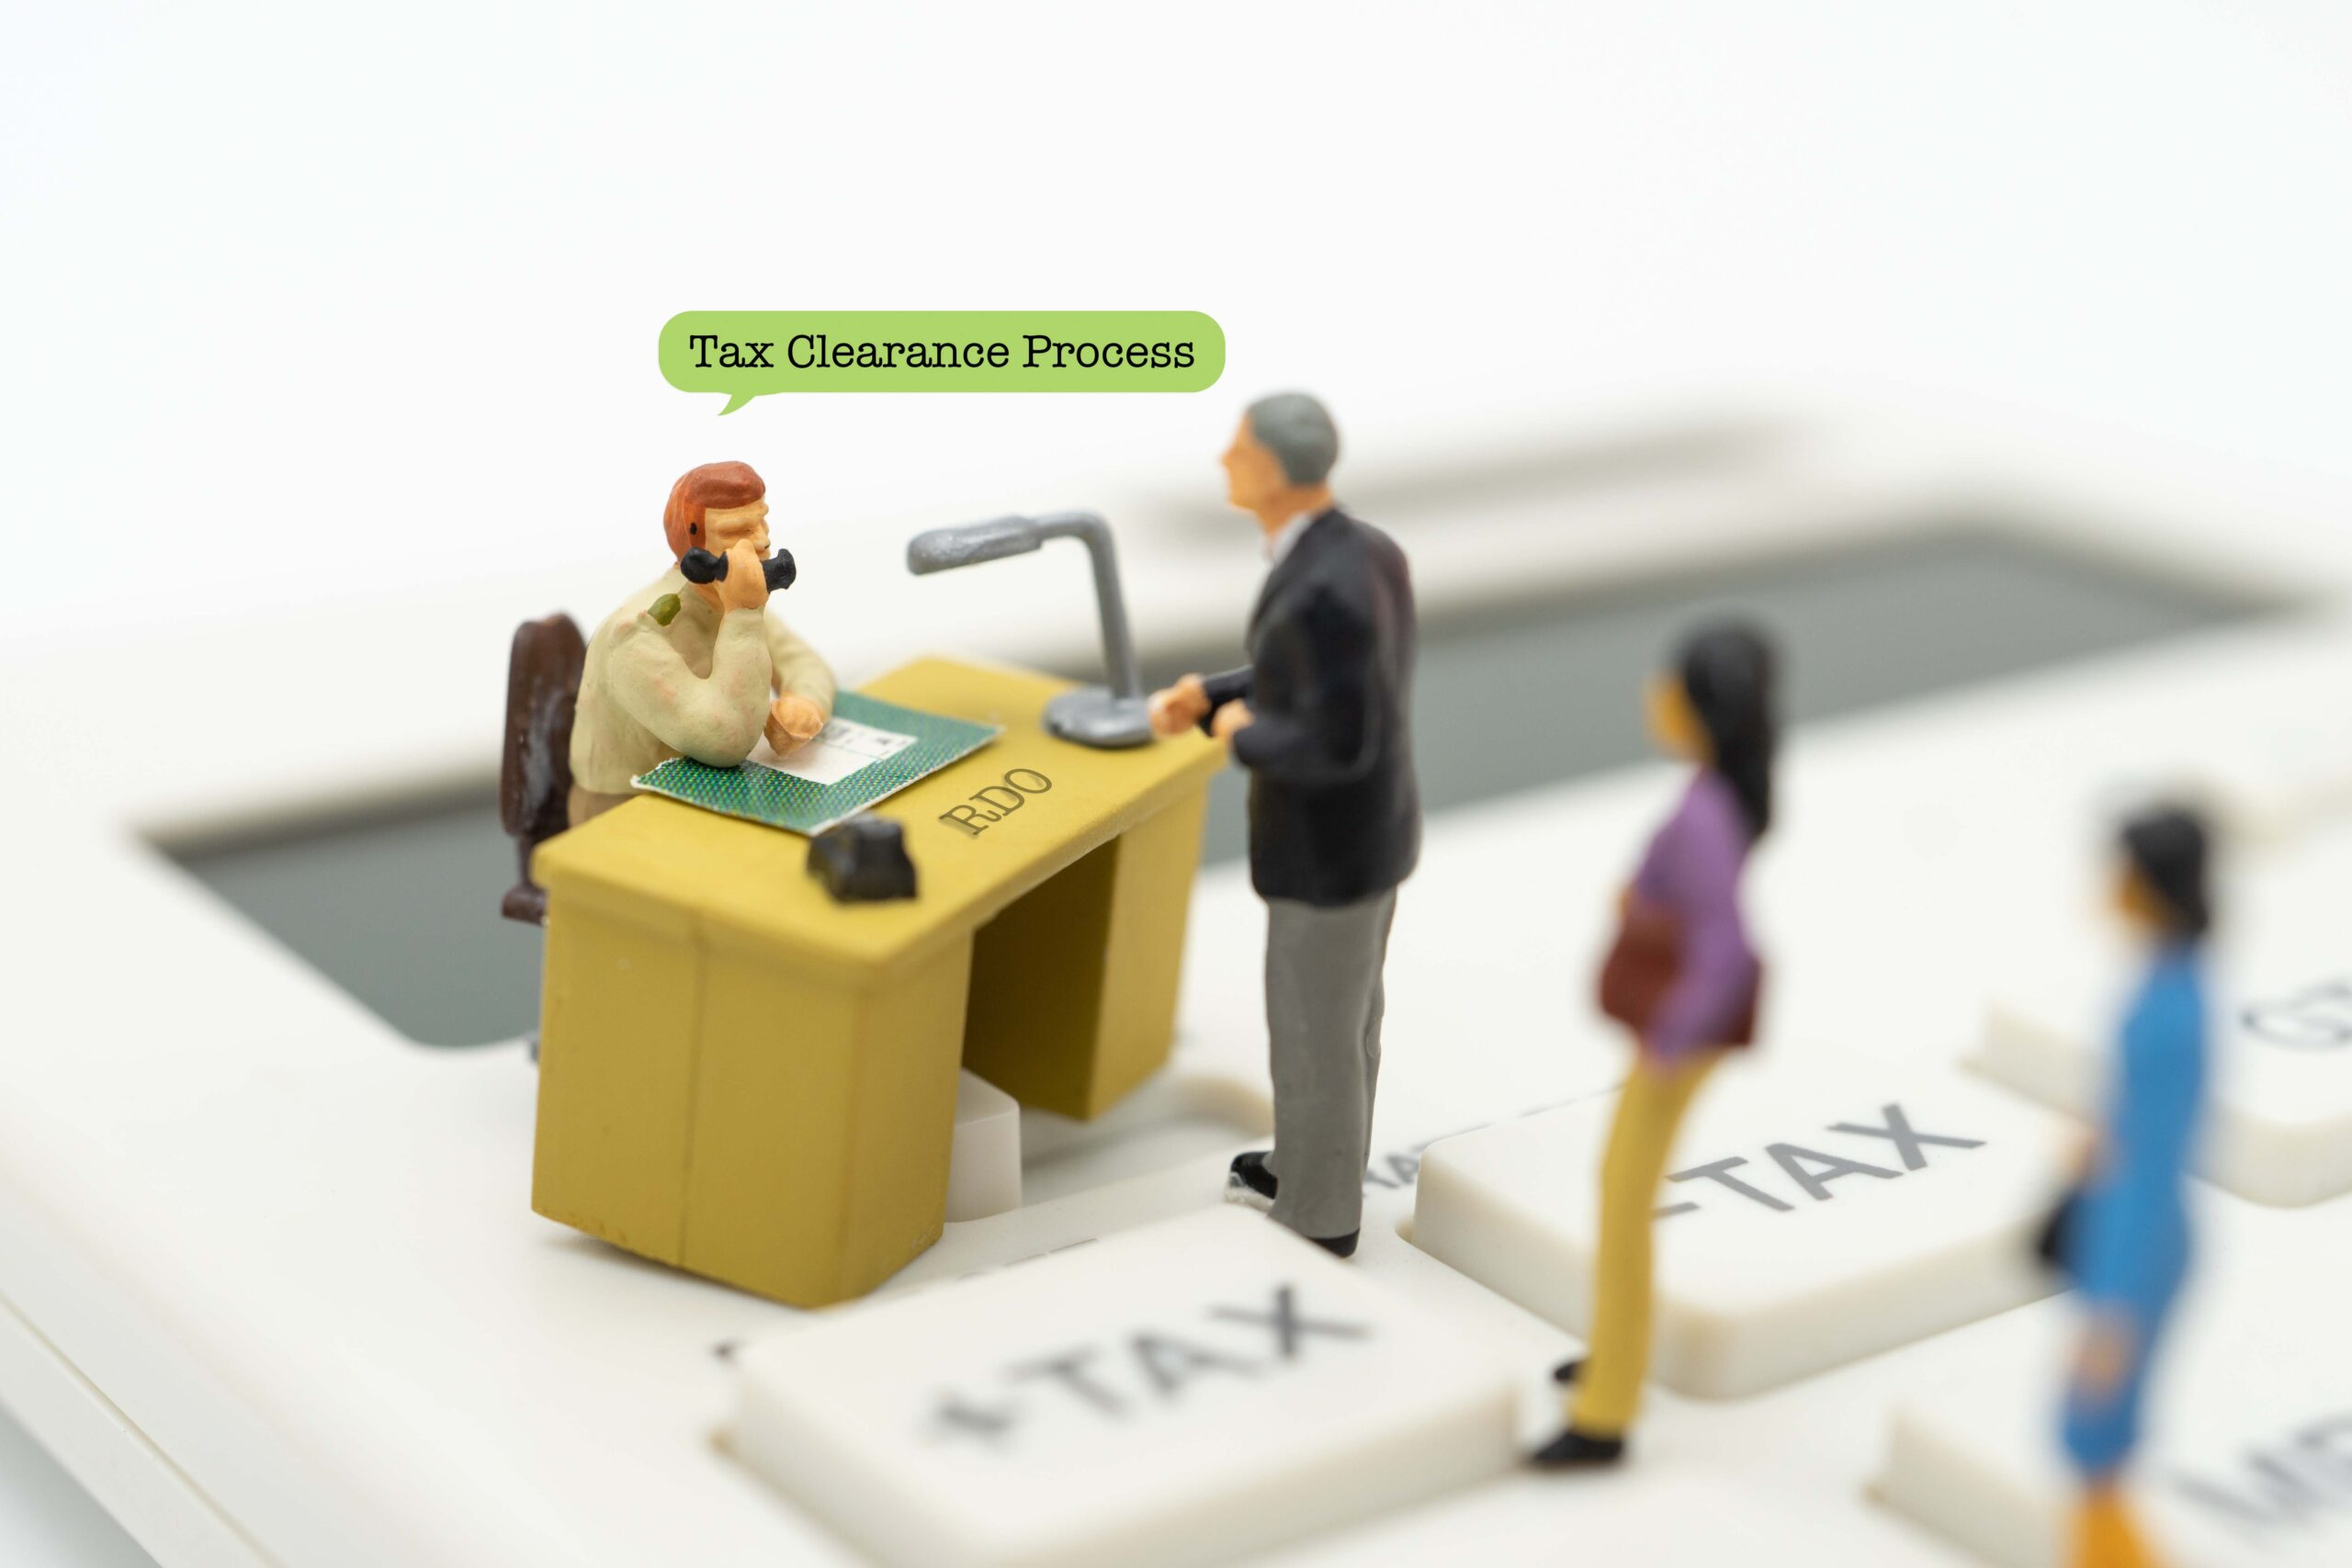 How to Process Your Tax Clearance in the Philippines